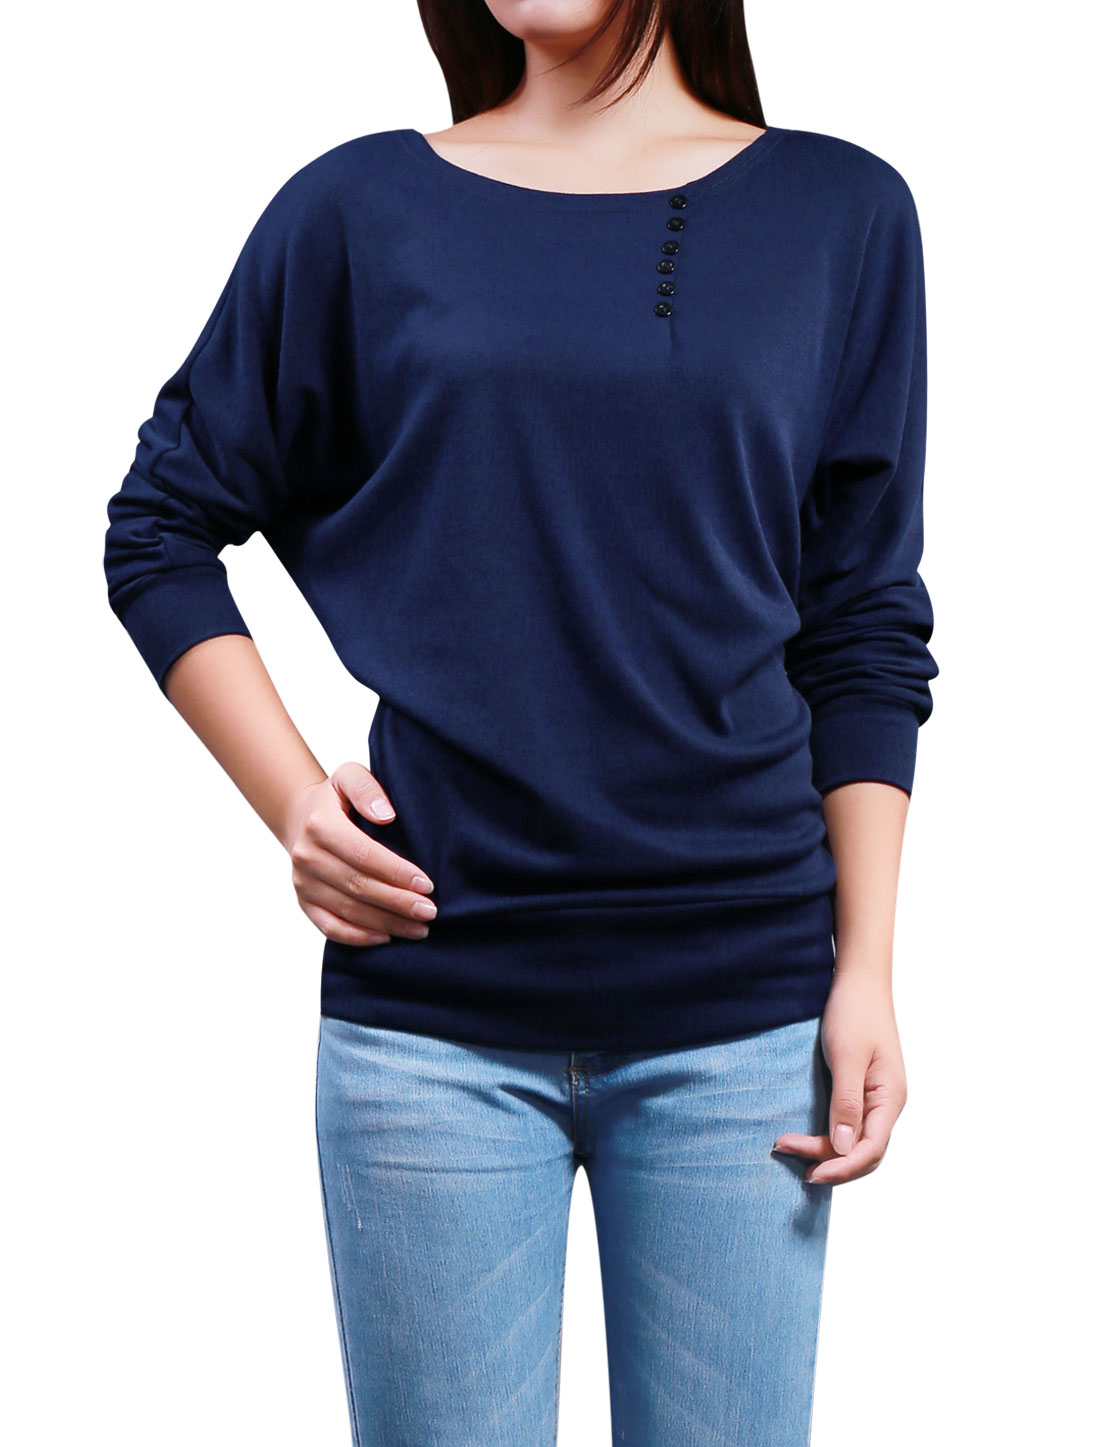 Woman Stylish Solid Color Dark Blue Button Decor Front Tunic Tops M